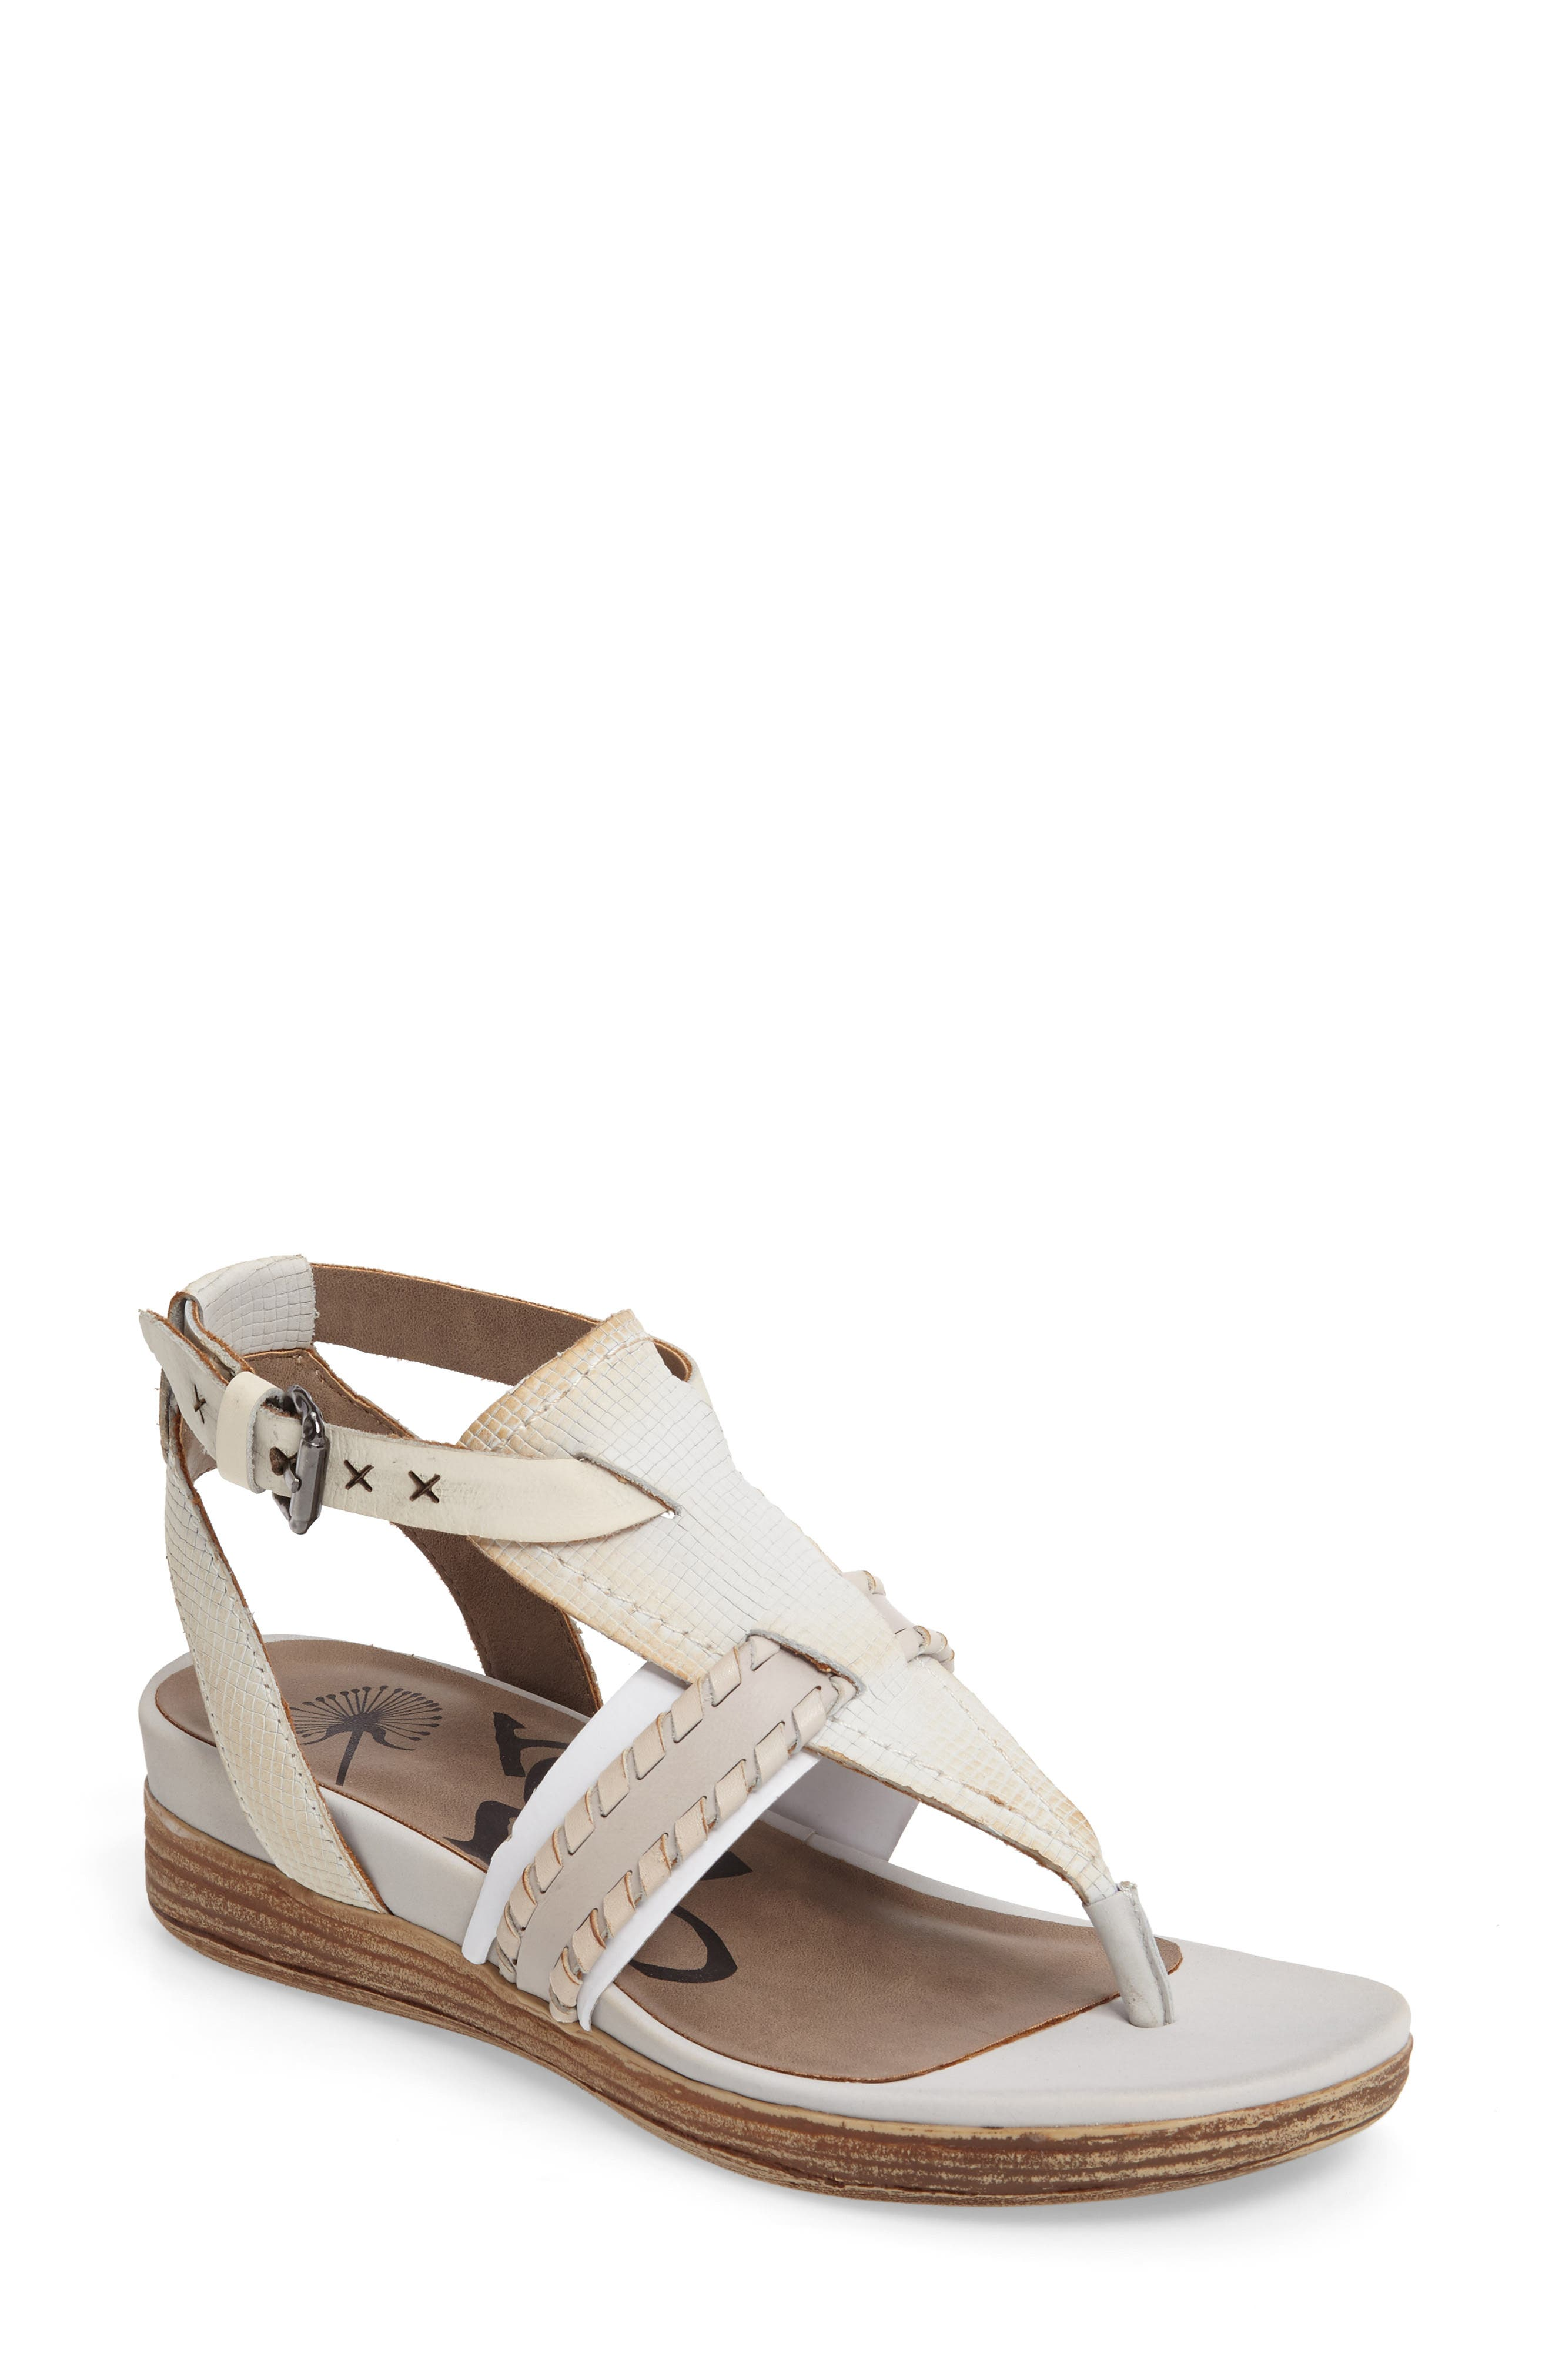 Celestial V-Strap Wedge Sandal,                         Main,                         color, Light Clay Leather